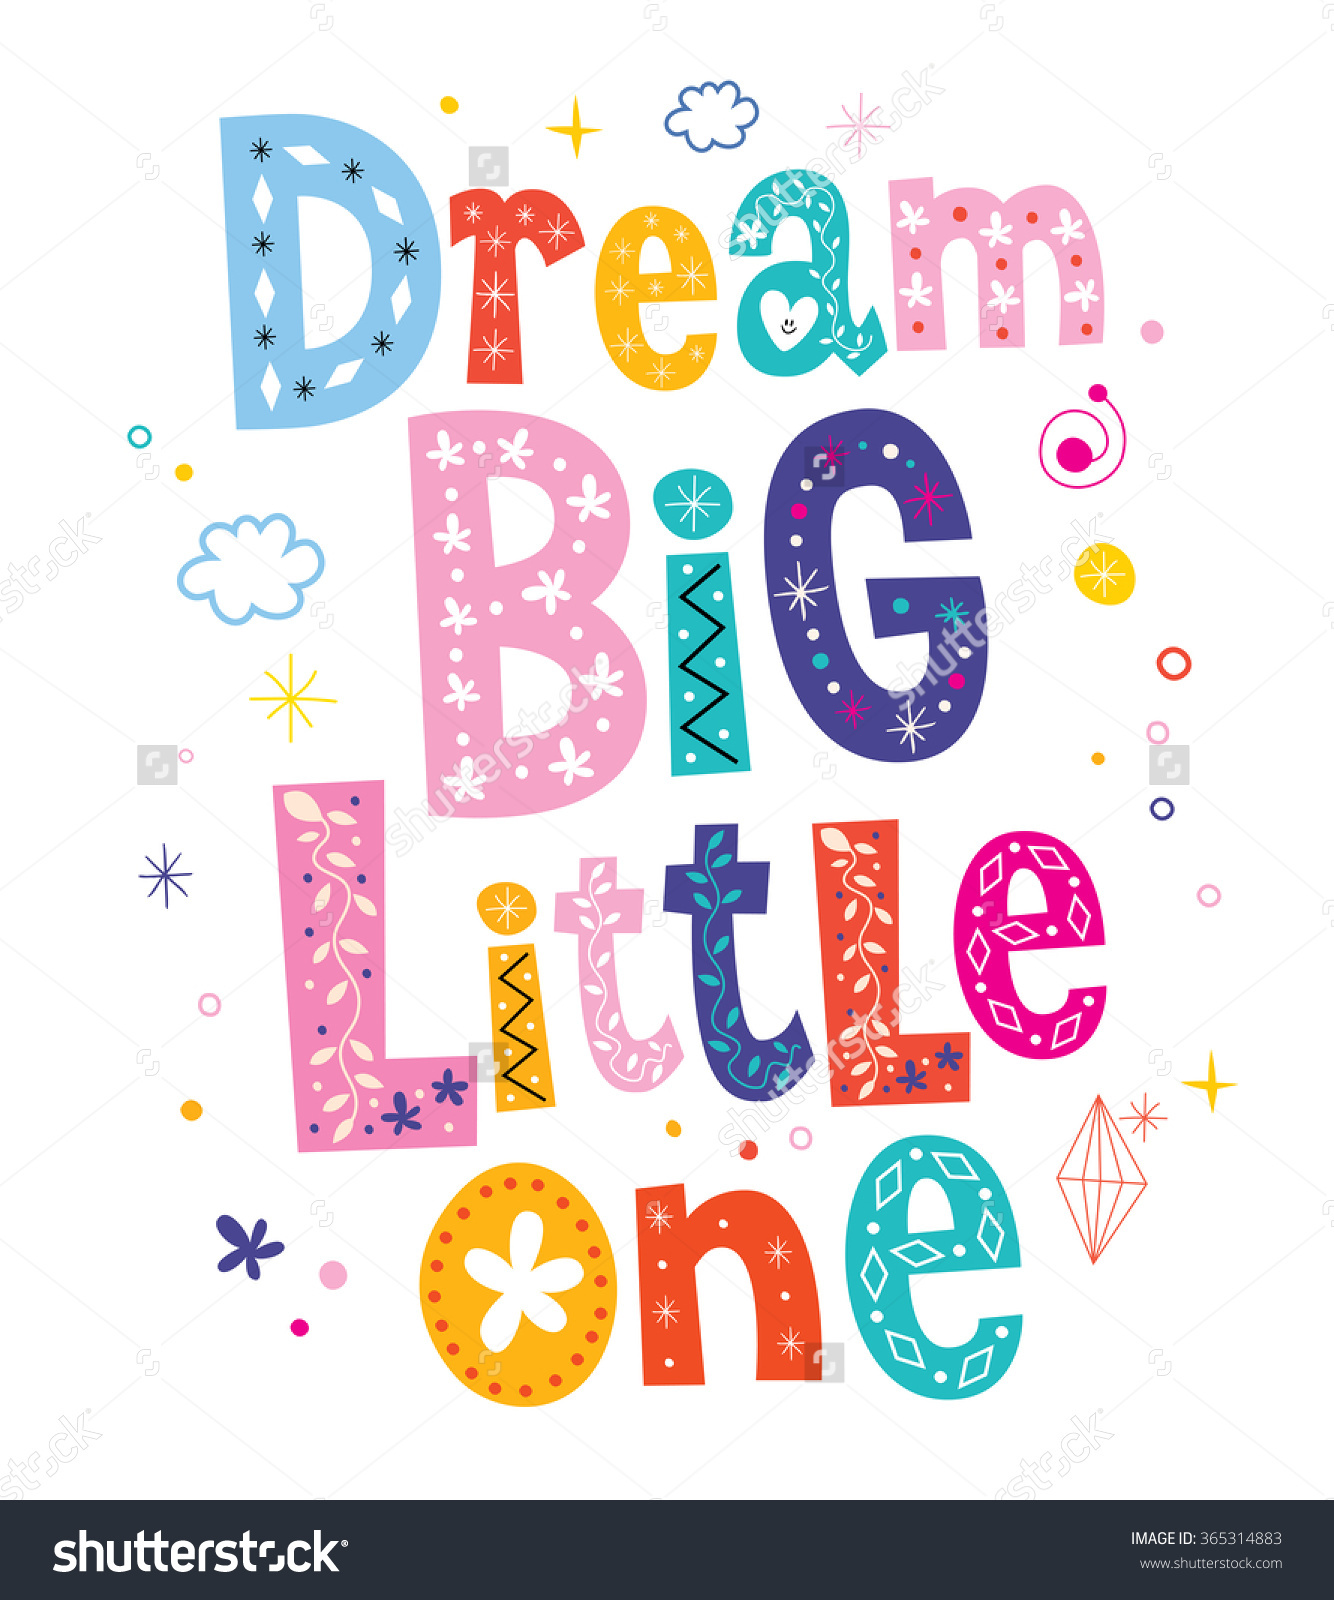 Dream Big Little One Kids Nursery Stock Vector 365314883.